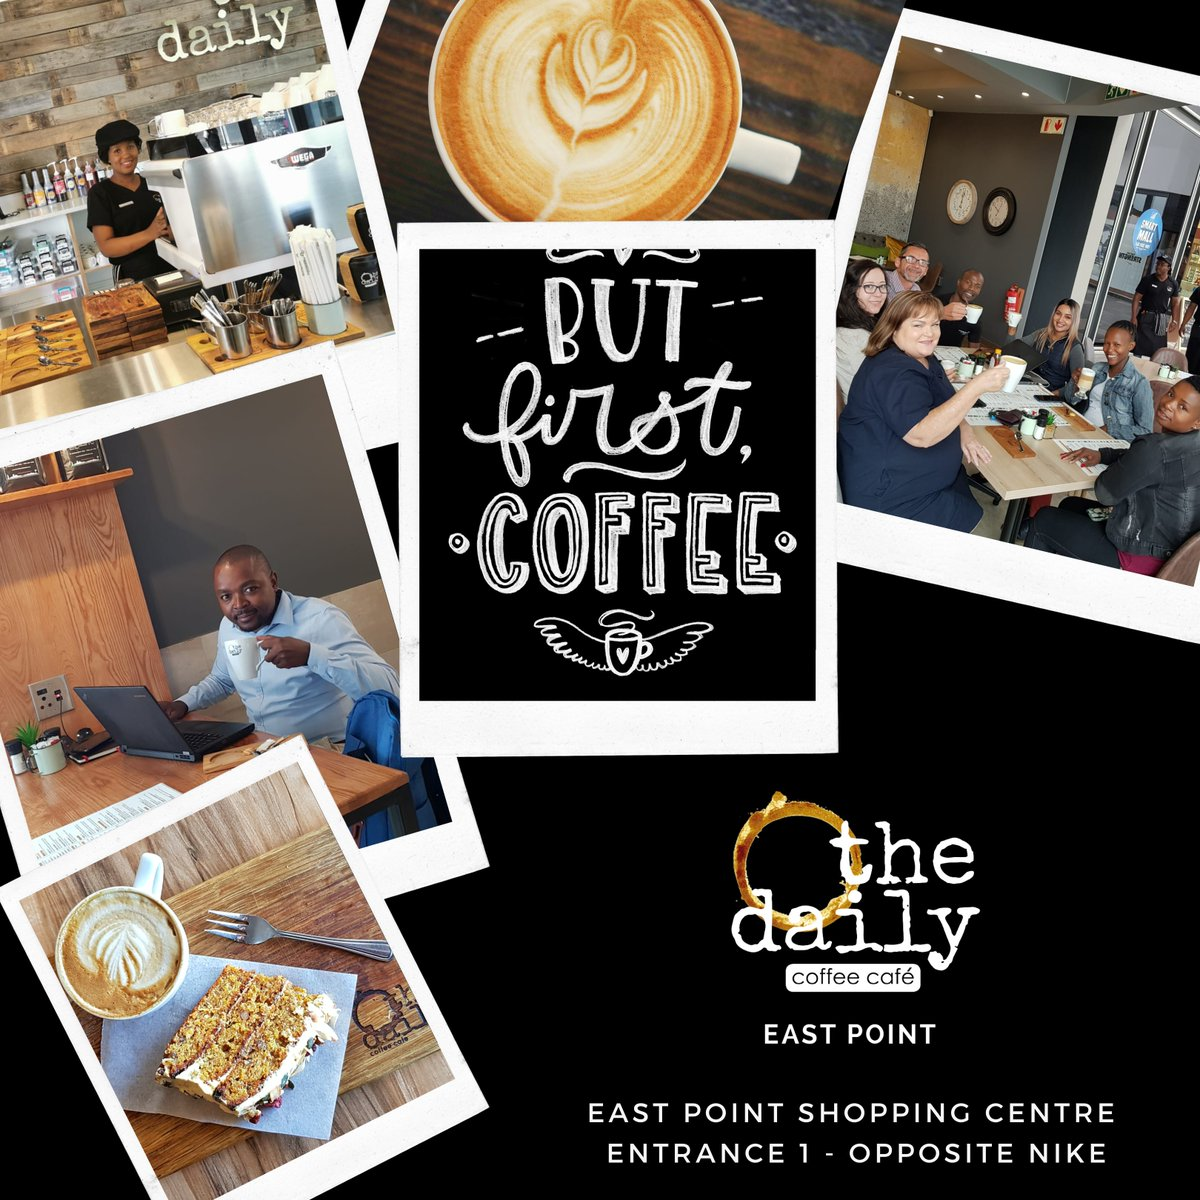 We are open! Sit back, relax and enjoy a cup that's been freshly brewed by your friendly barista at The Daily Coffee Cafe. #boksburg #coffeetime #coffeelover #coffeeshop @eastpointshopping